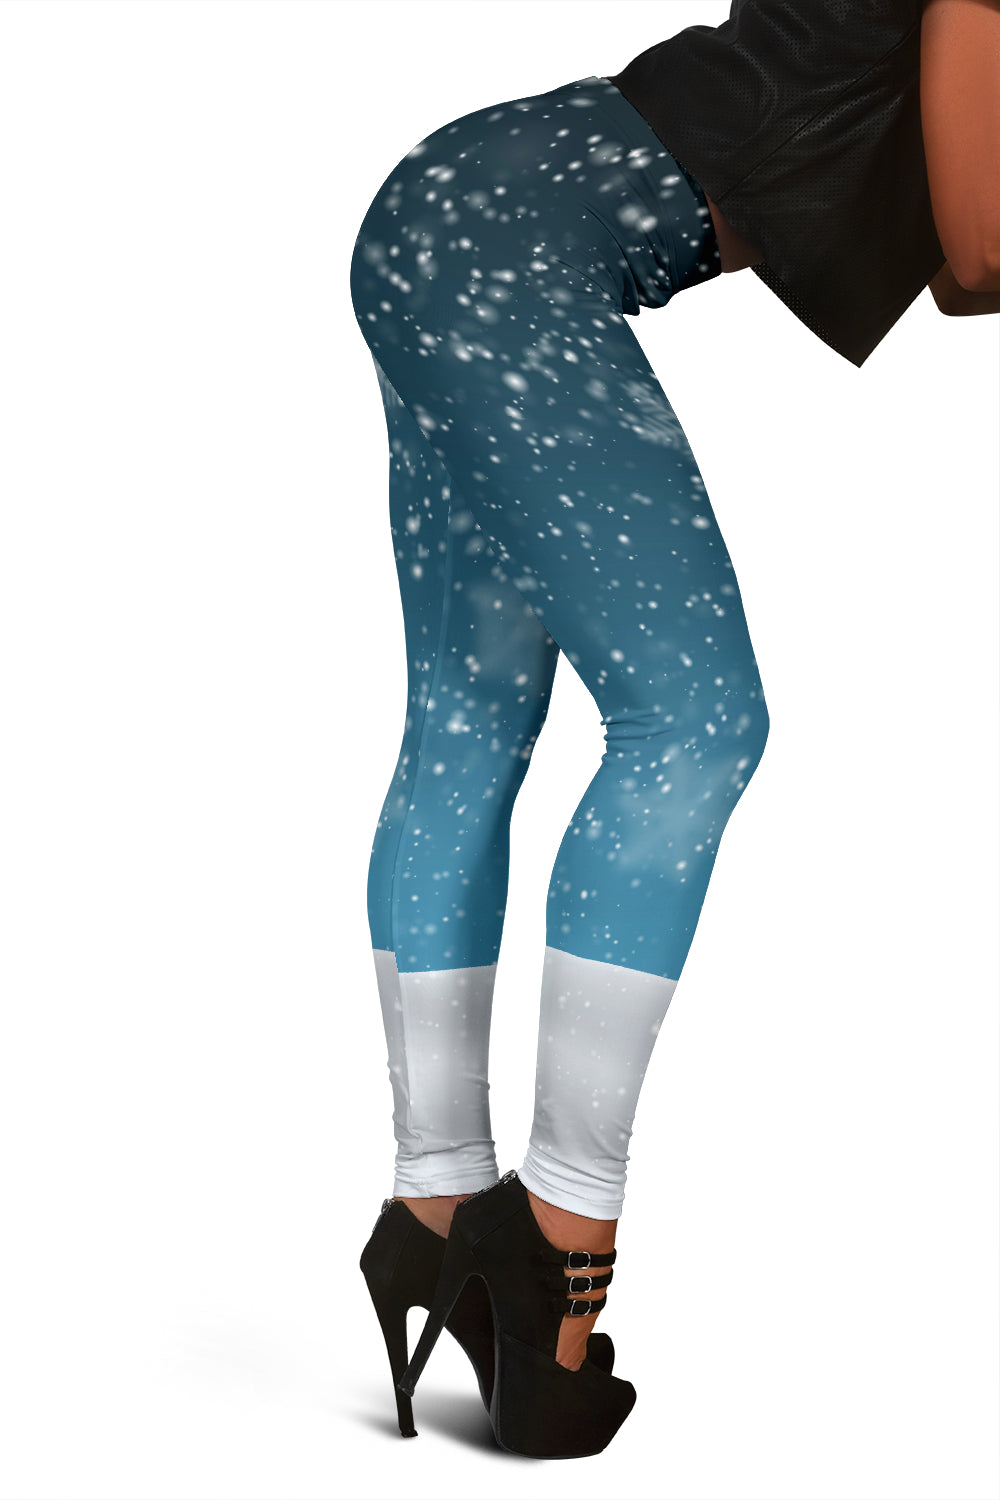 Snow Christmas Leggings For Women